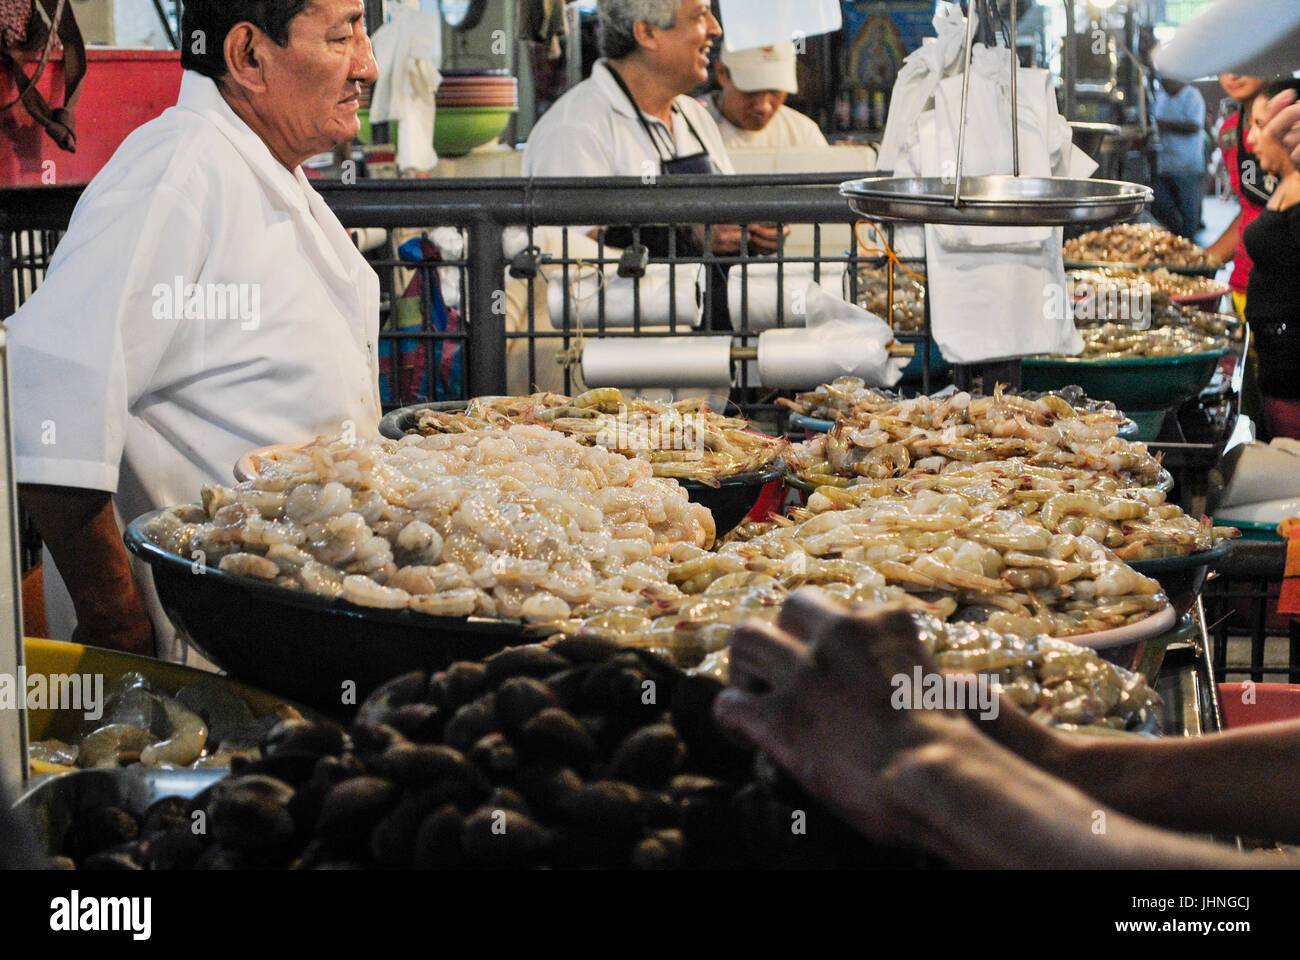 Sellers of the seafood stalls.  Municipal market.  Guayaquil, Ecuador Stock Photo